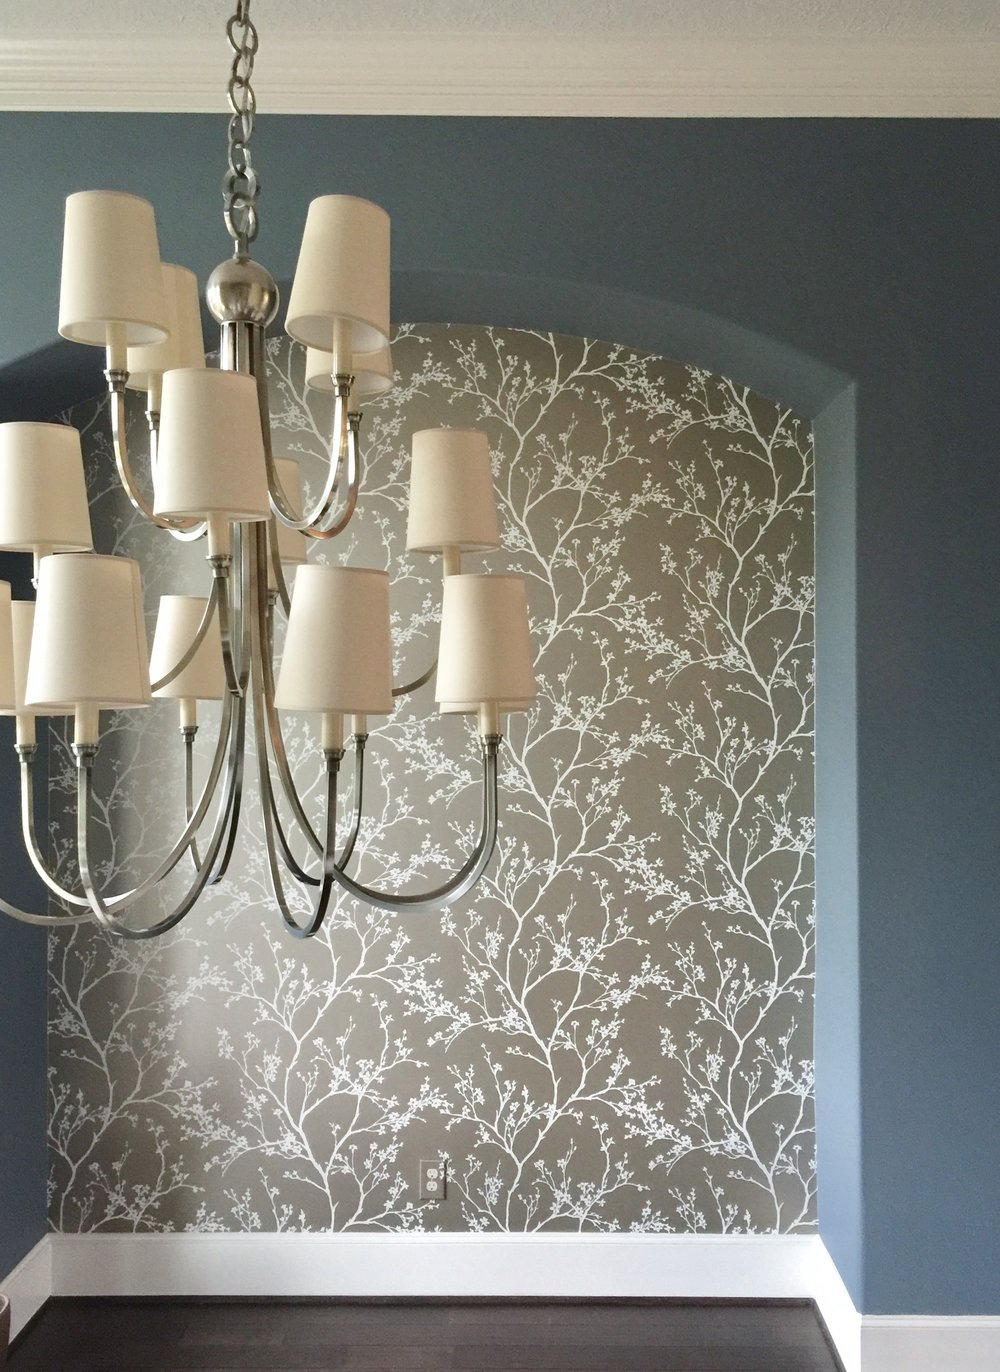 Wallcovering installed, light fixture changed out, new paint color customizes the dining room. #diningroom #chandelier #wallpaper